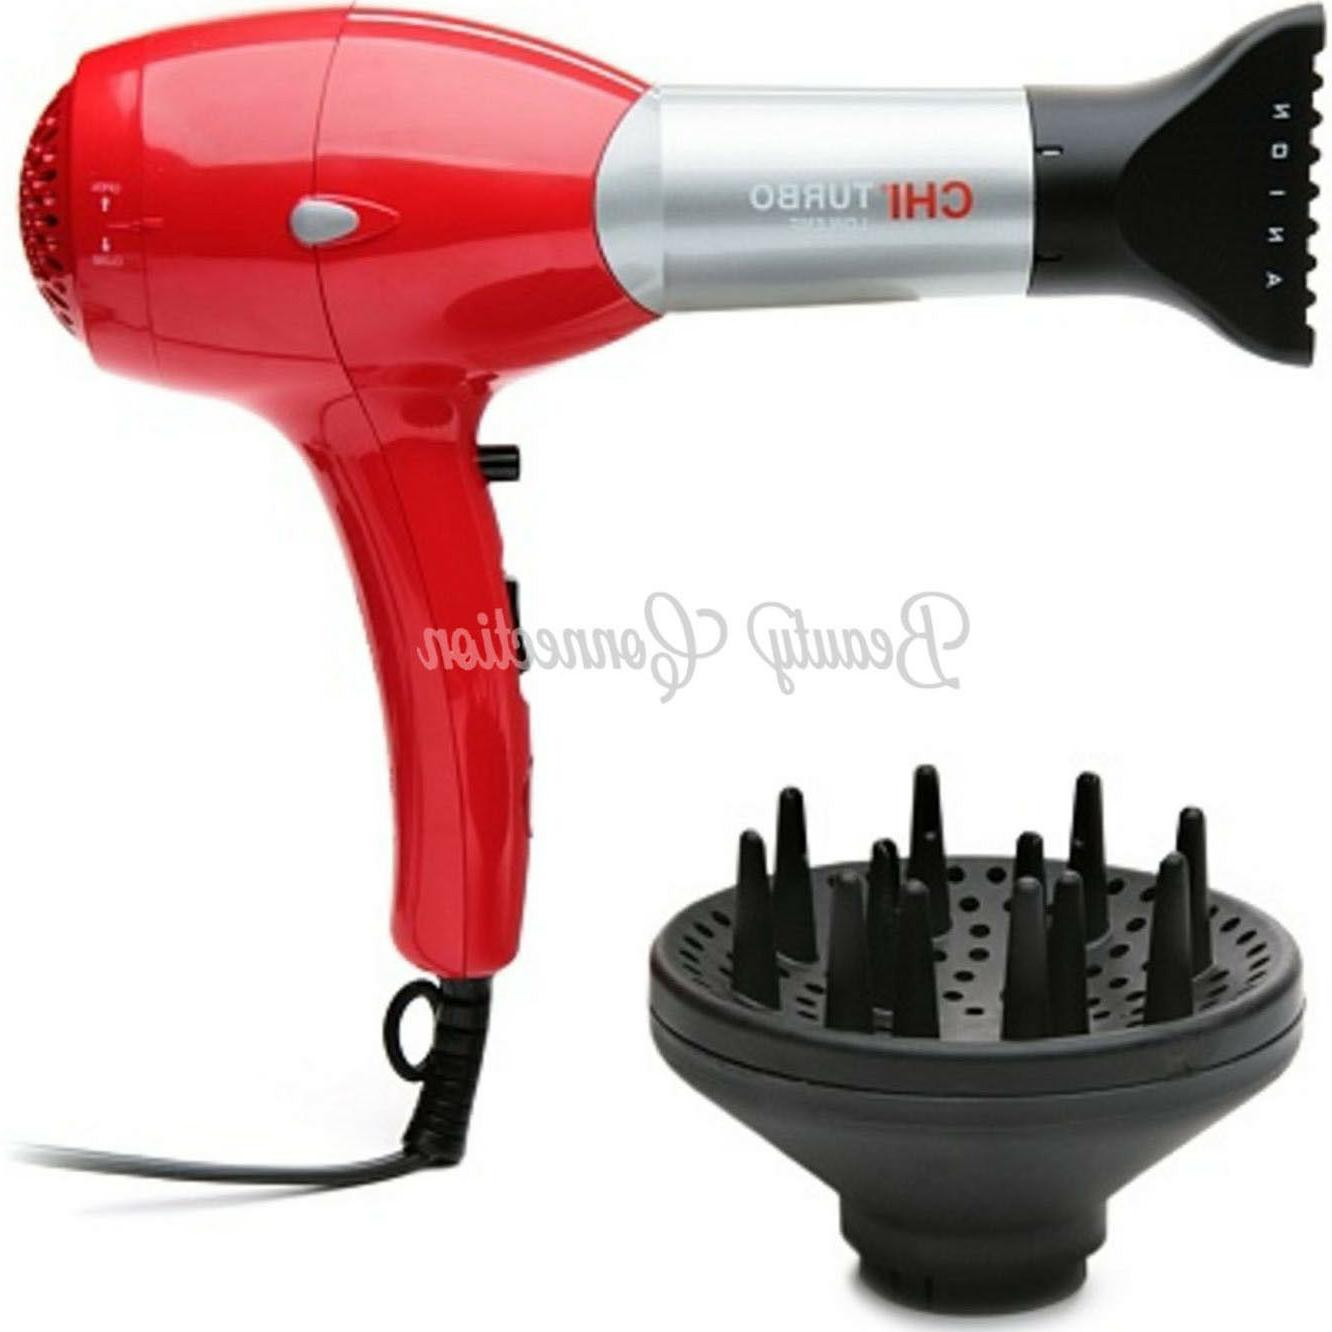 turbo ceramic professional hair dryer with diffuser